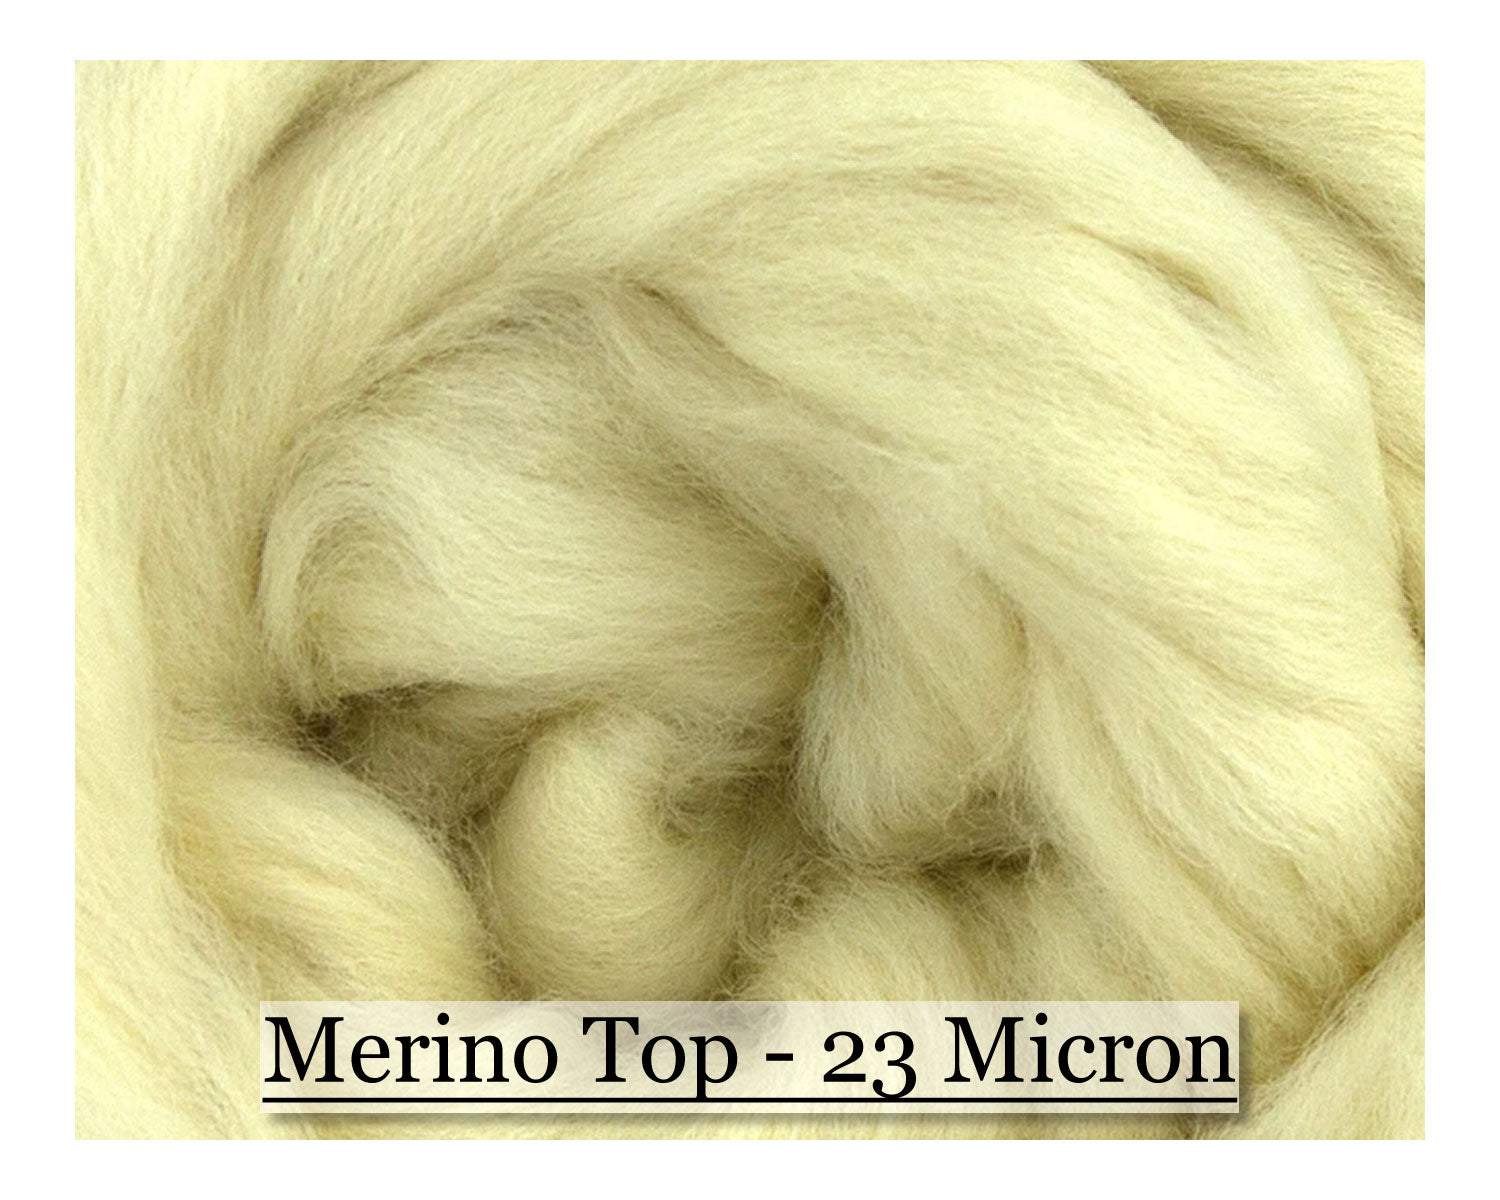 Merino Top - 23 micron - 16oz